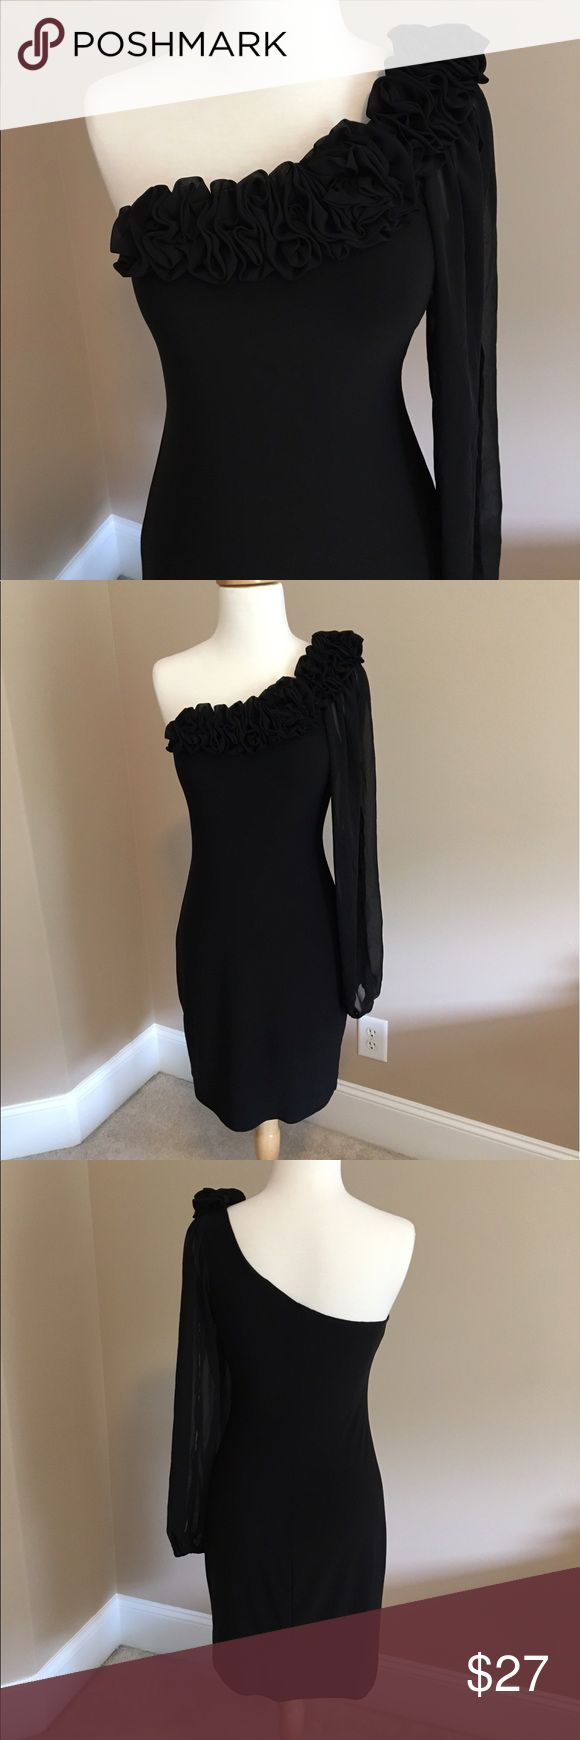 Stunning Black One Shoulder Dress B. Darlin black one-sleeve dress. The dress is mostly polyester and the sheer sleeve has a slit in it. There is gorgeous gathered detail around the neckline. The tag says size 7/8 because it's a Junior's dress but it fits like a Women's 0/2. Only worn a couple of times so it's in great condition! B. Darlin Dresses Mini